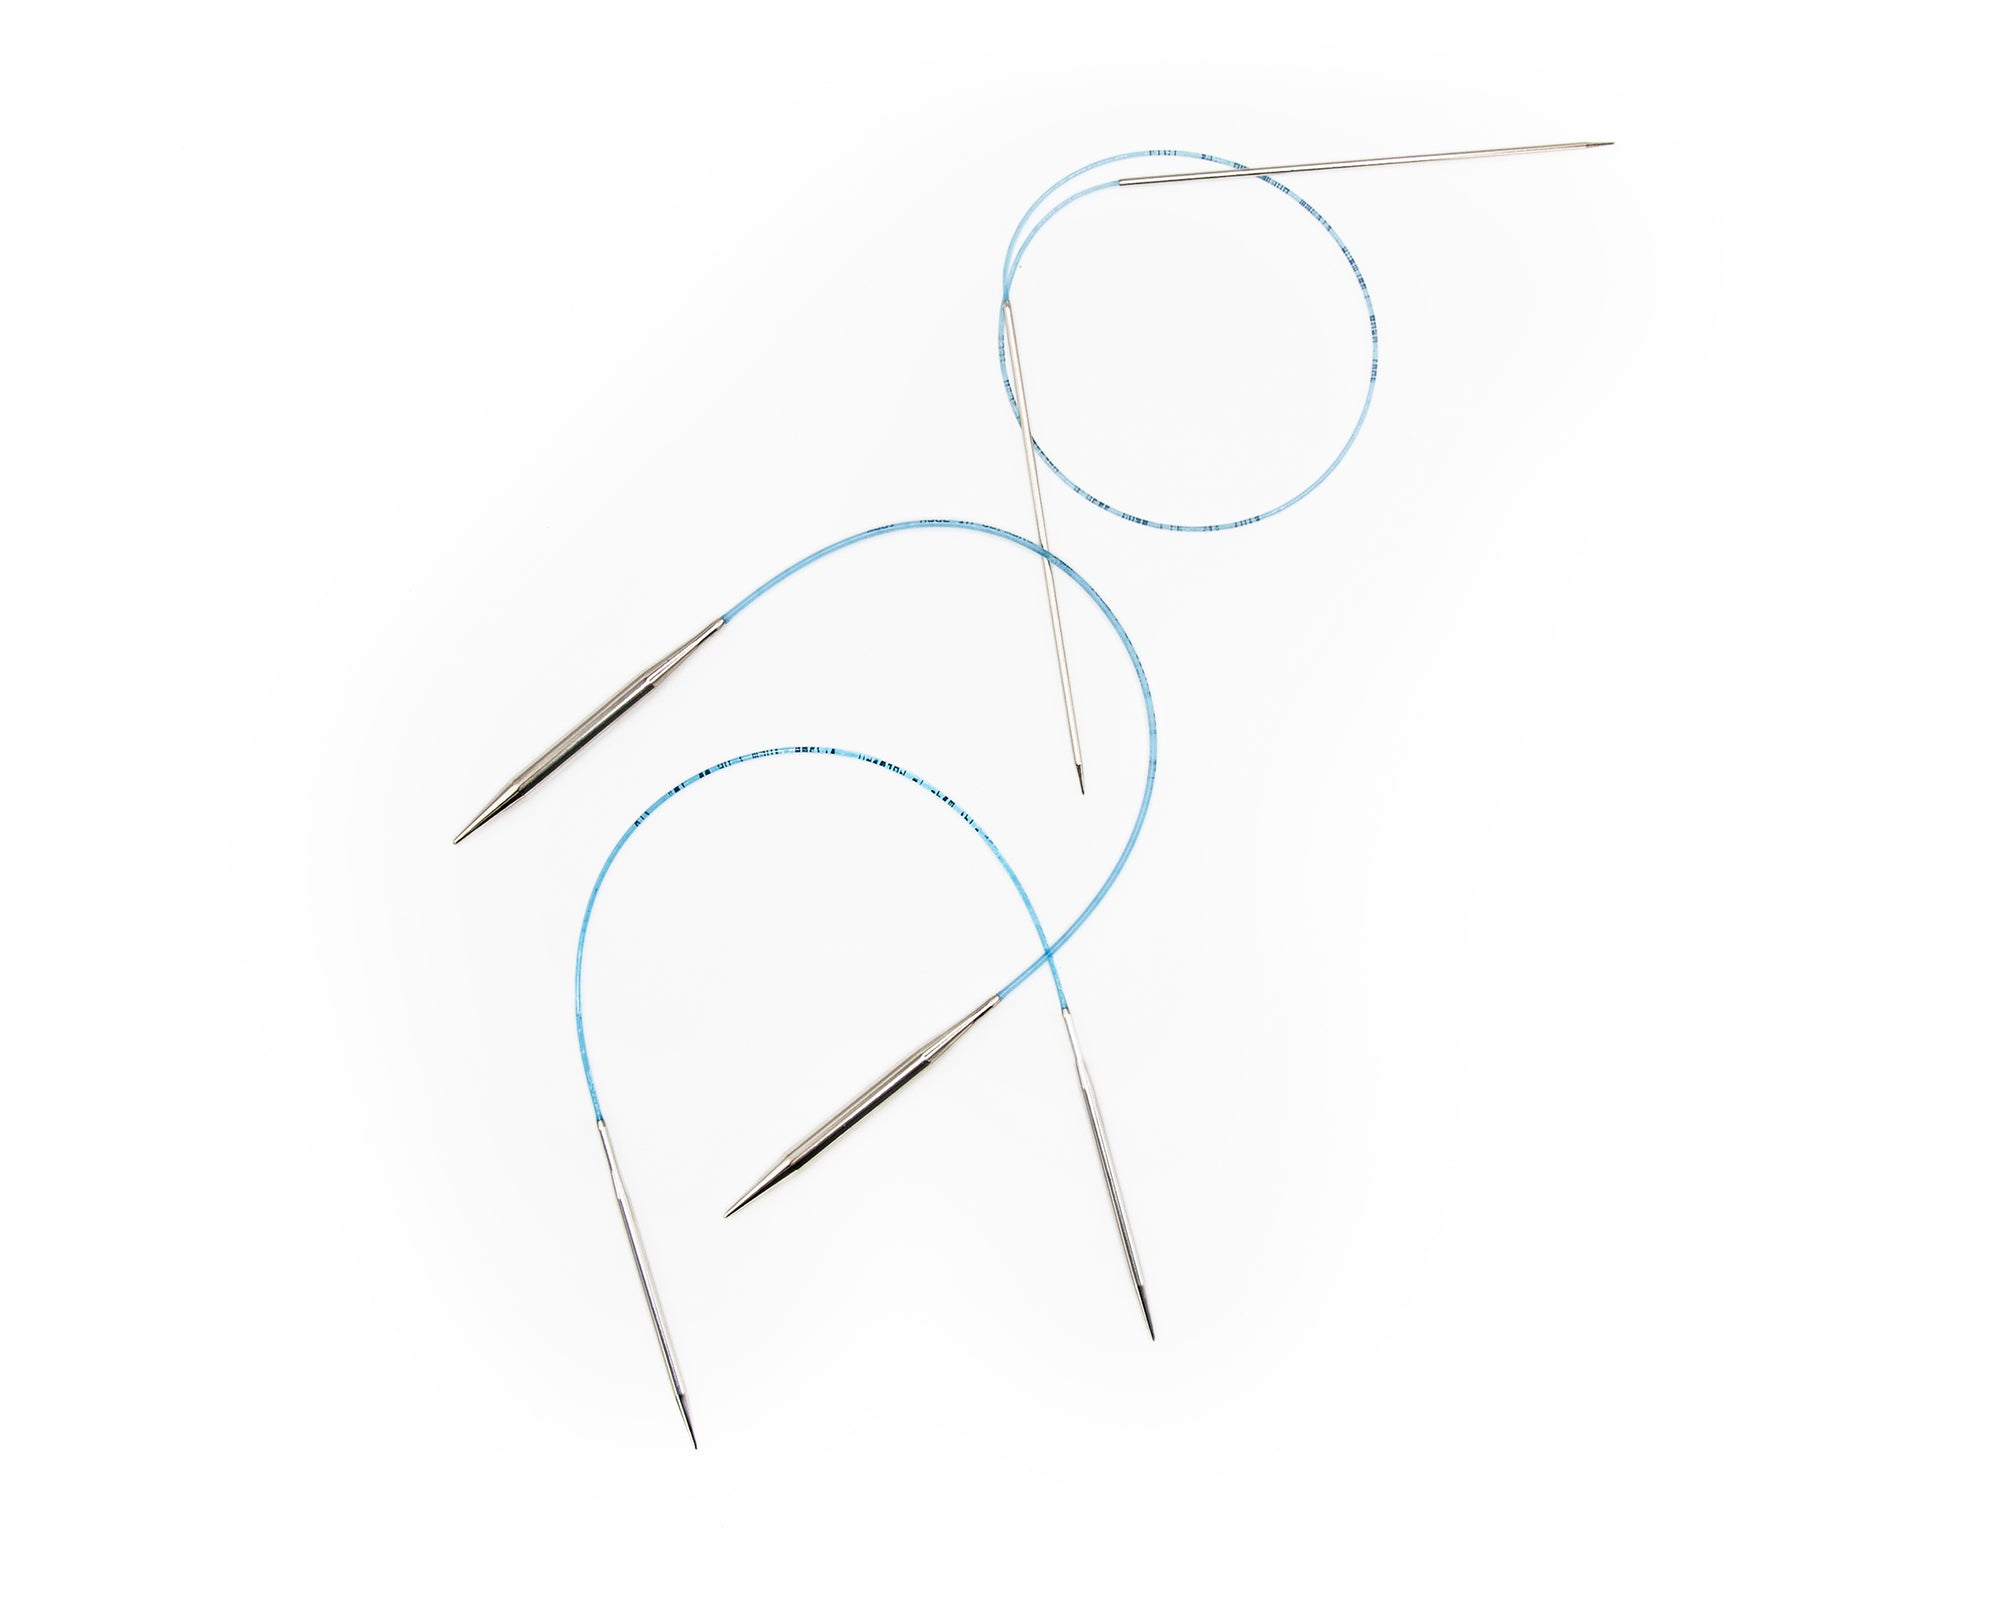 Addi Turbo Circular Knitting Needles